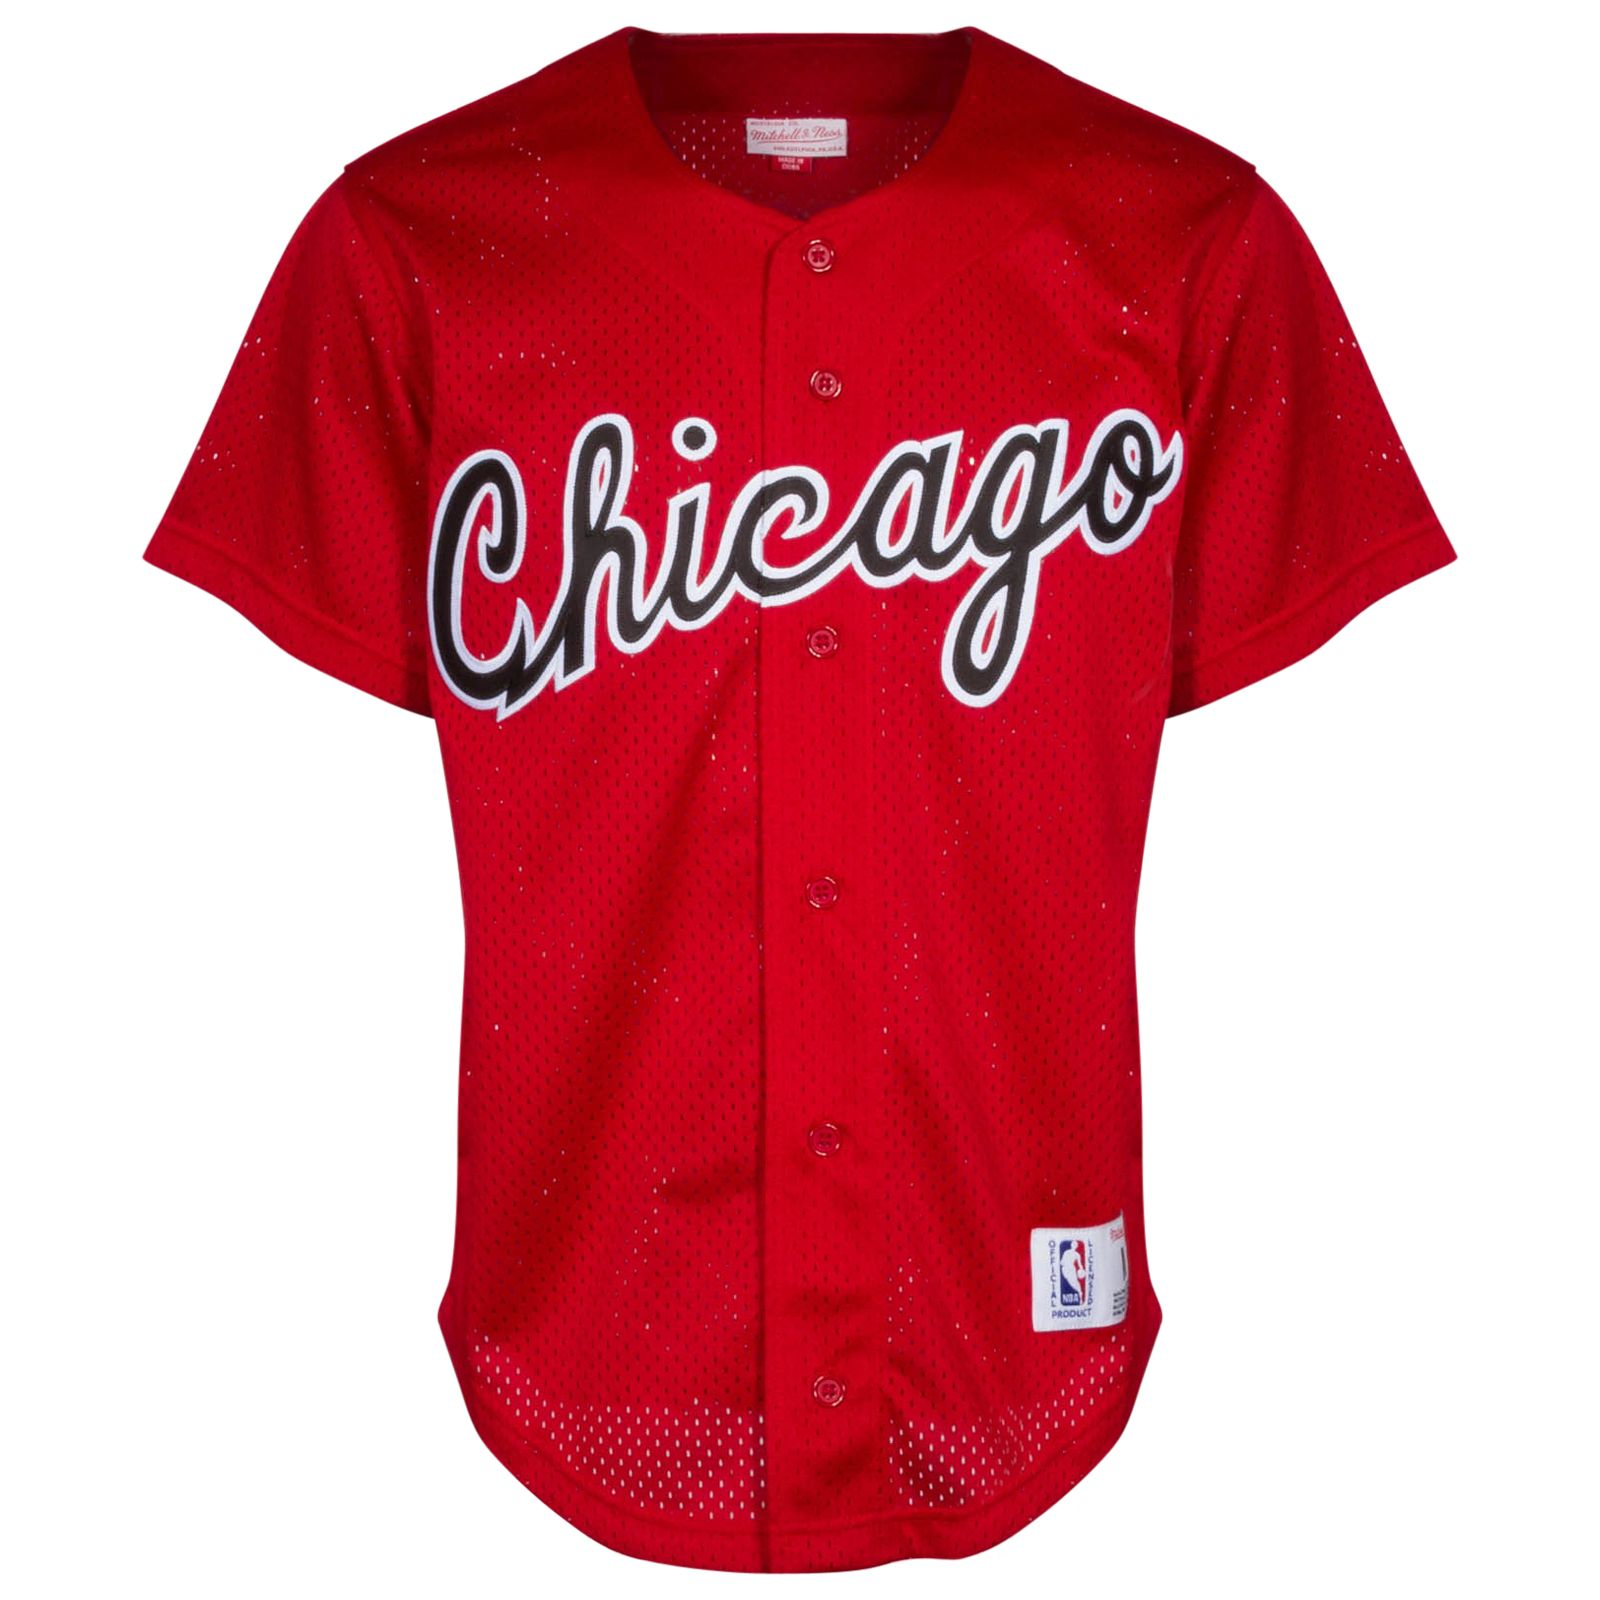 Chicago Bulls Men's Red ButtonUp Baseball Jersey by